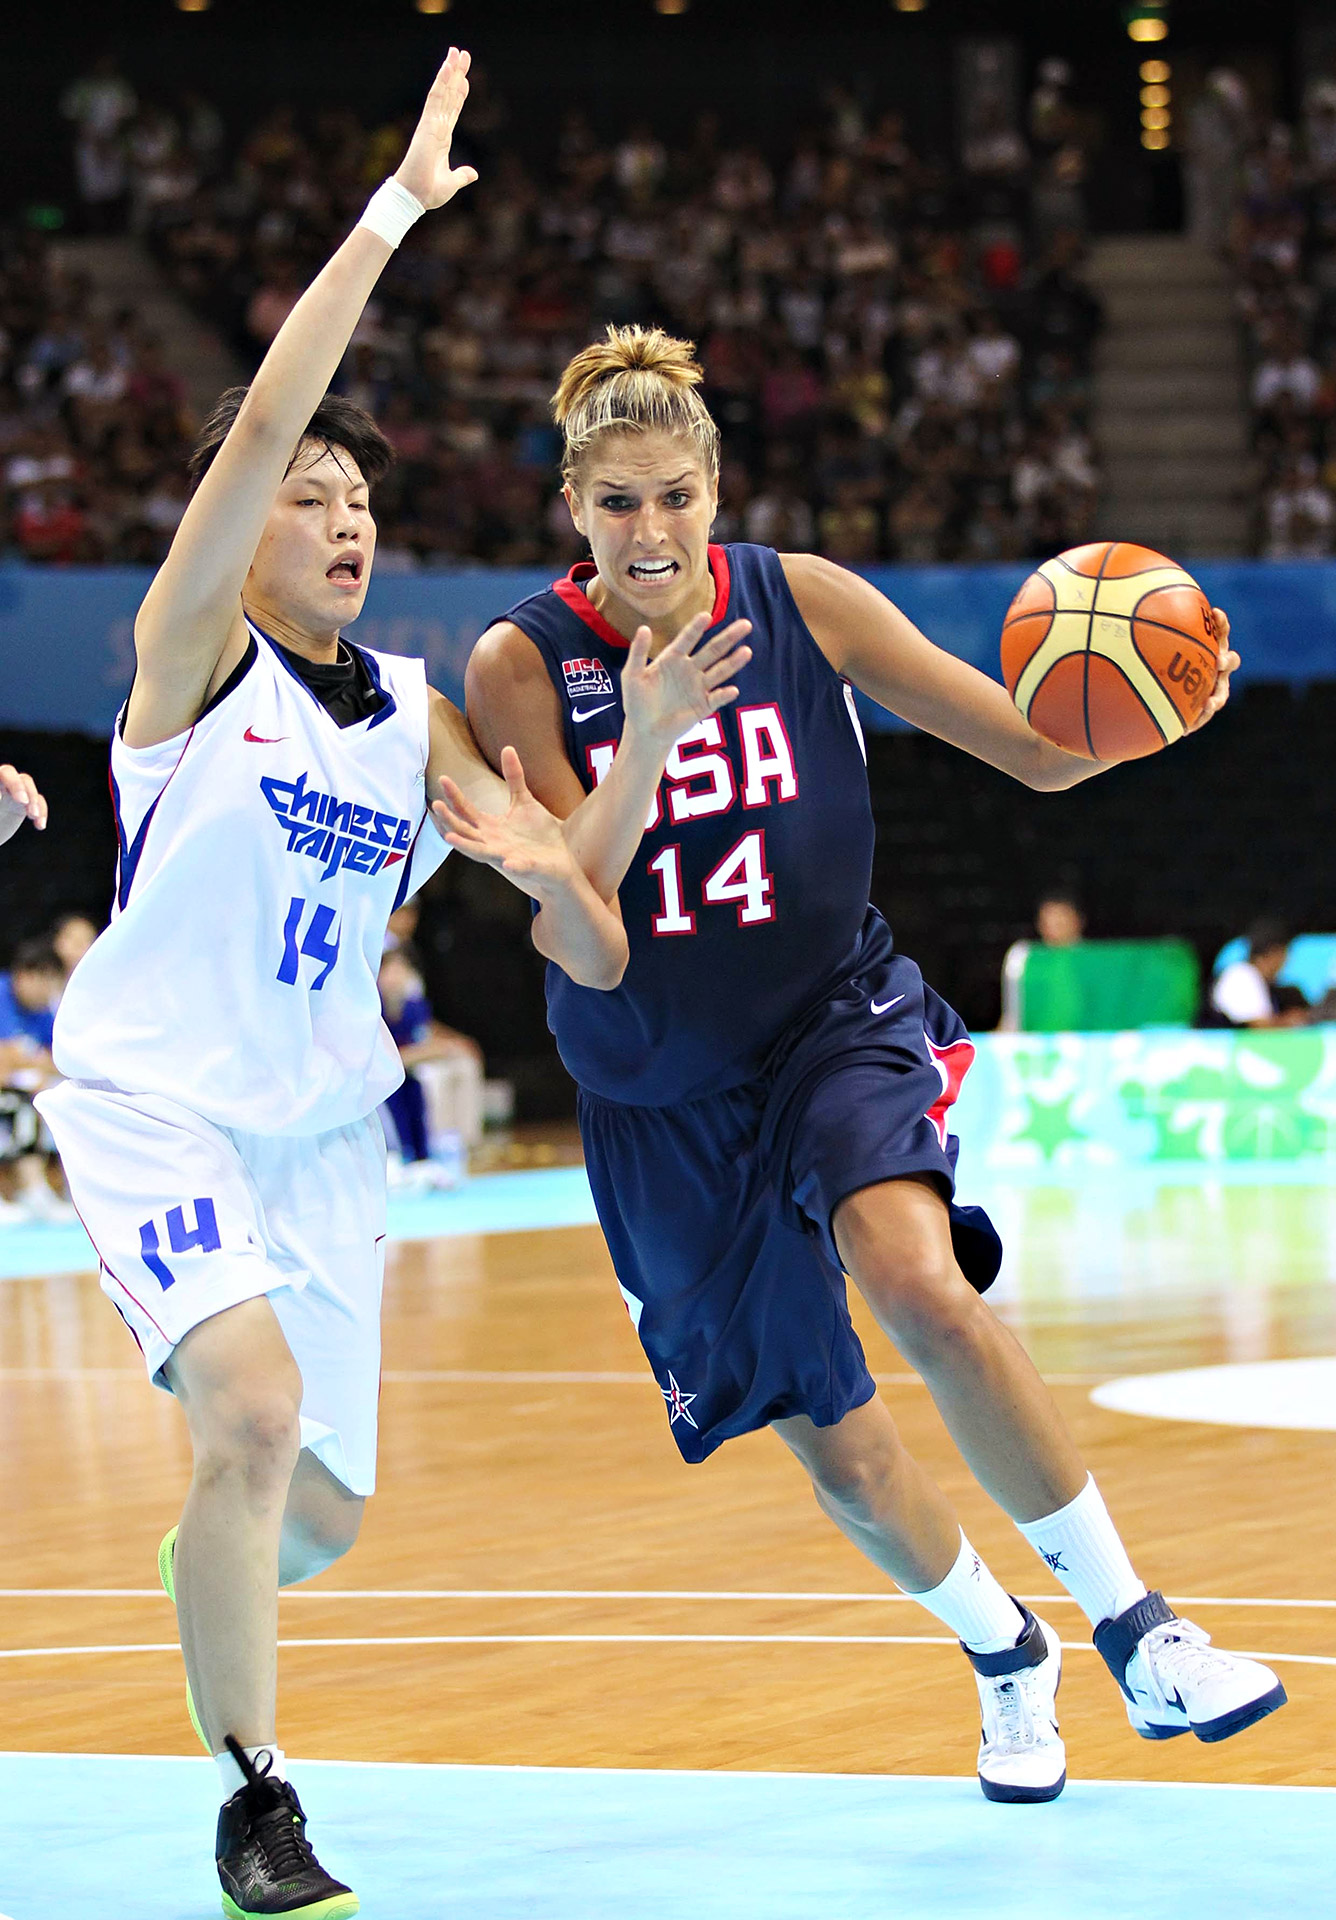 Elena Delle Donne led Team USA in scoring and rebounding at the World University Games in China in 2011. The United States, which also featured Nneka Ogwumike and Skylar Diggins, won gold.